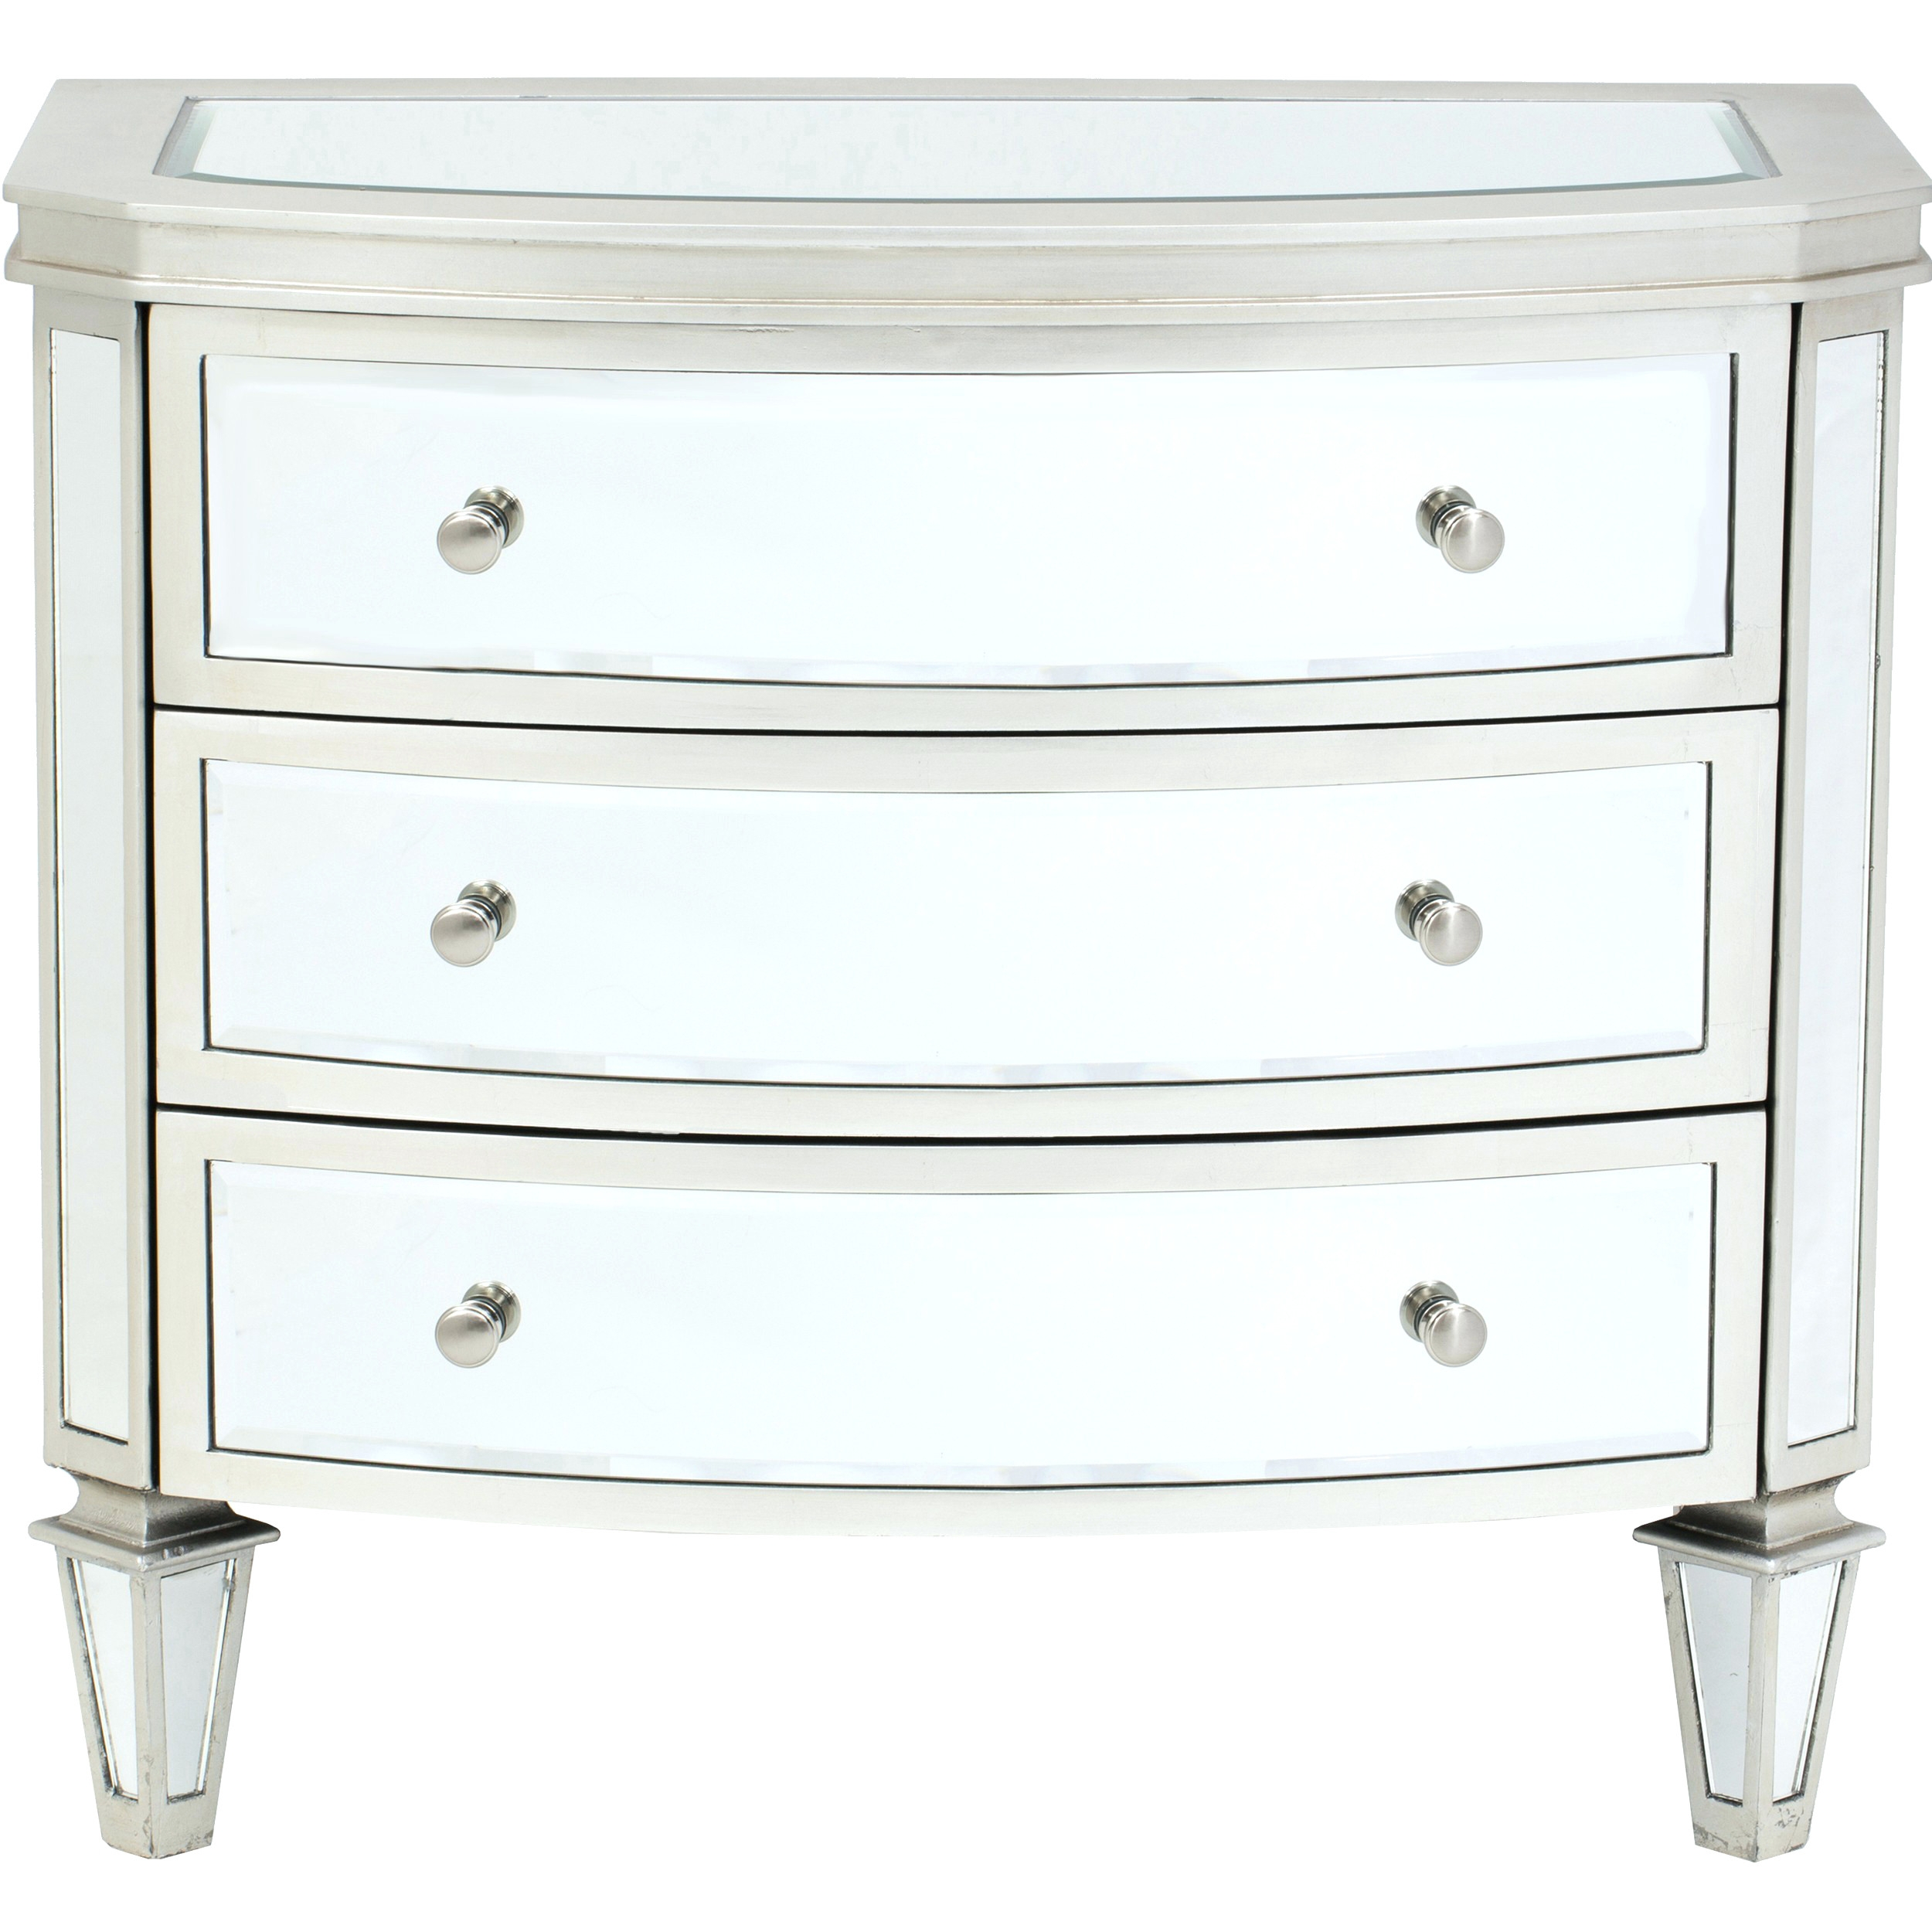 monarch mirrored drawer chest furniture for plan accent table target nightstand affordable lamps black metal lamp real marble coffee small crystal wood end with legs telephone